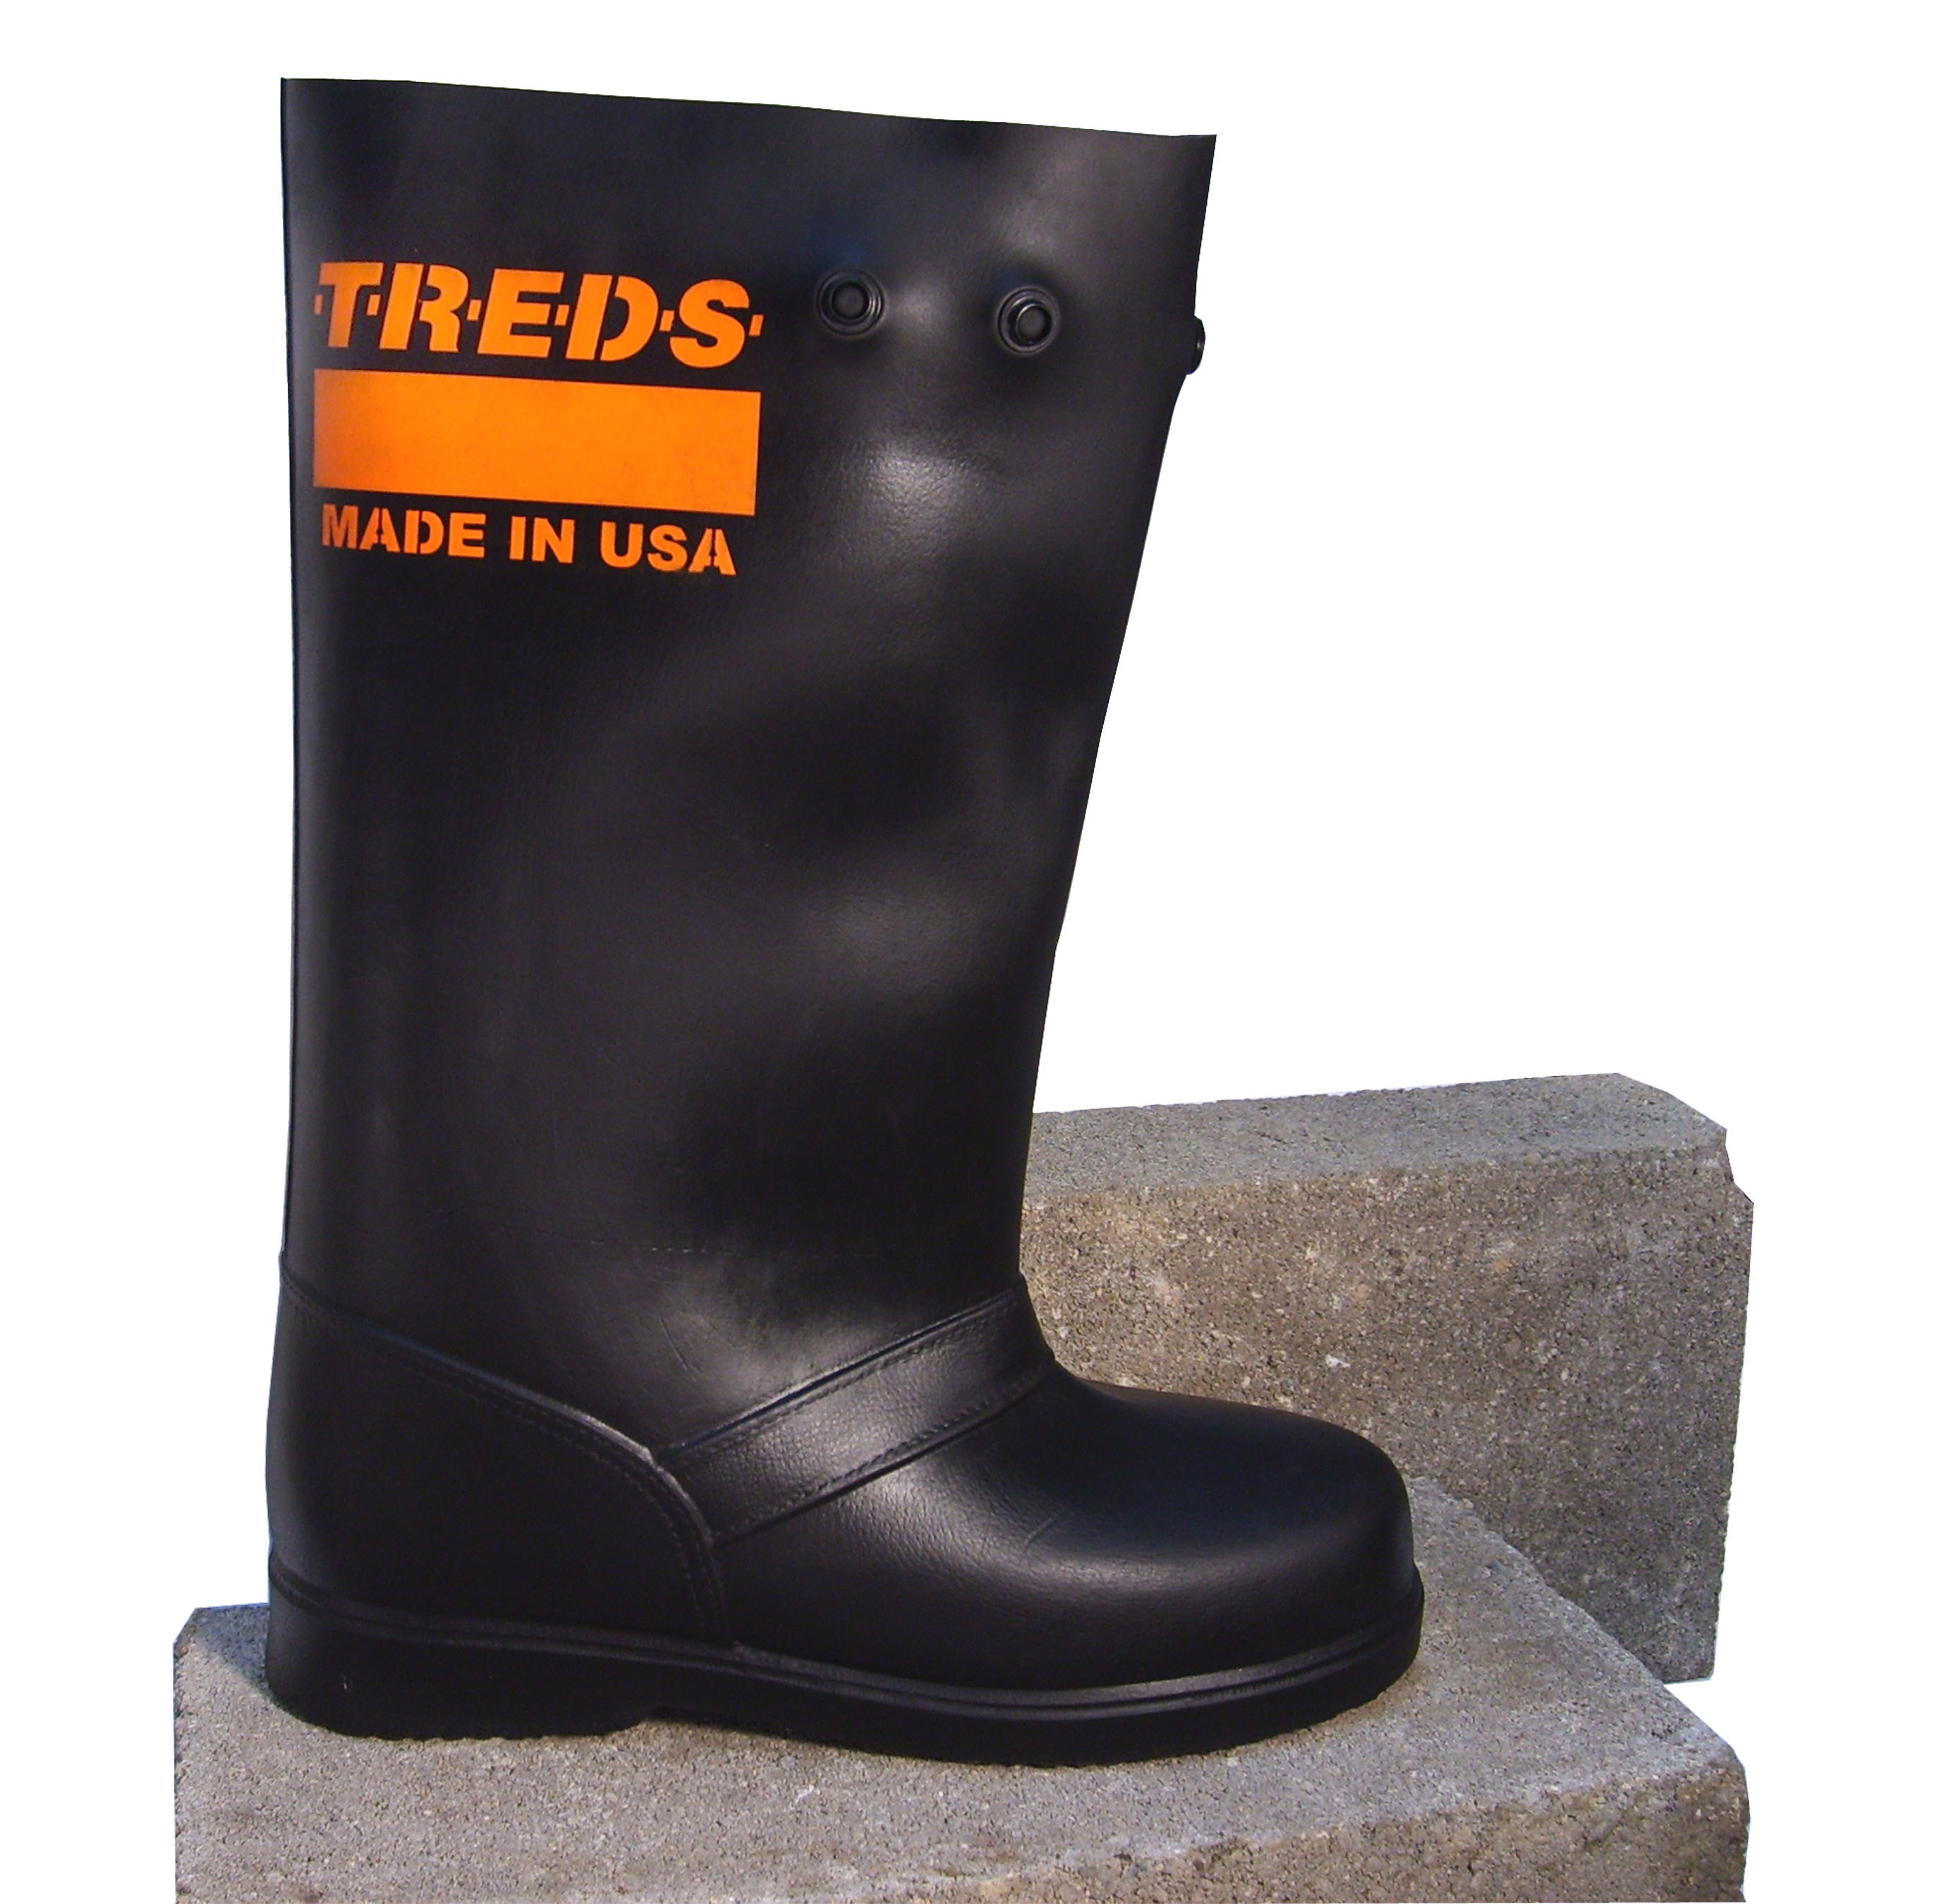 Personal Protective Equipment Boots Treds Slush Boots